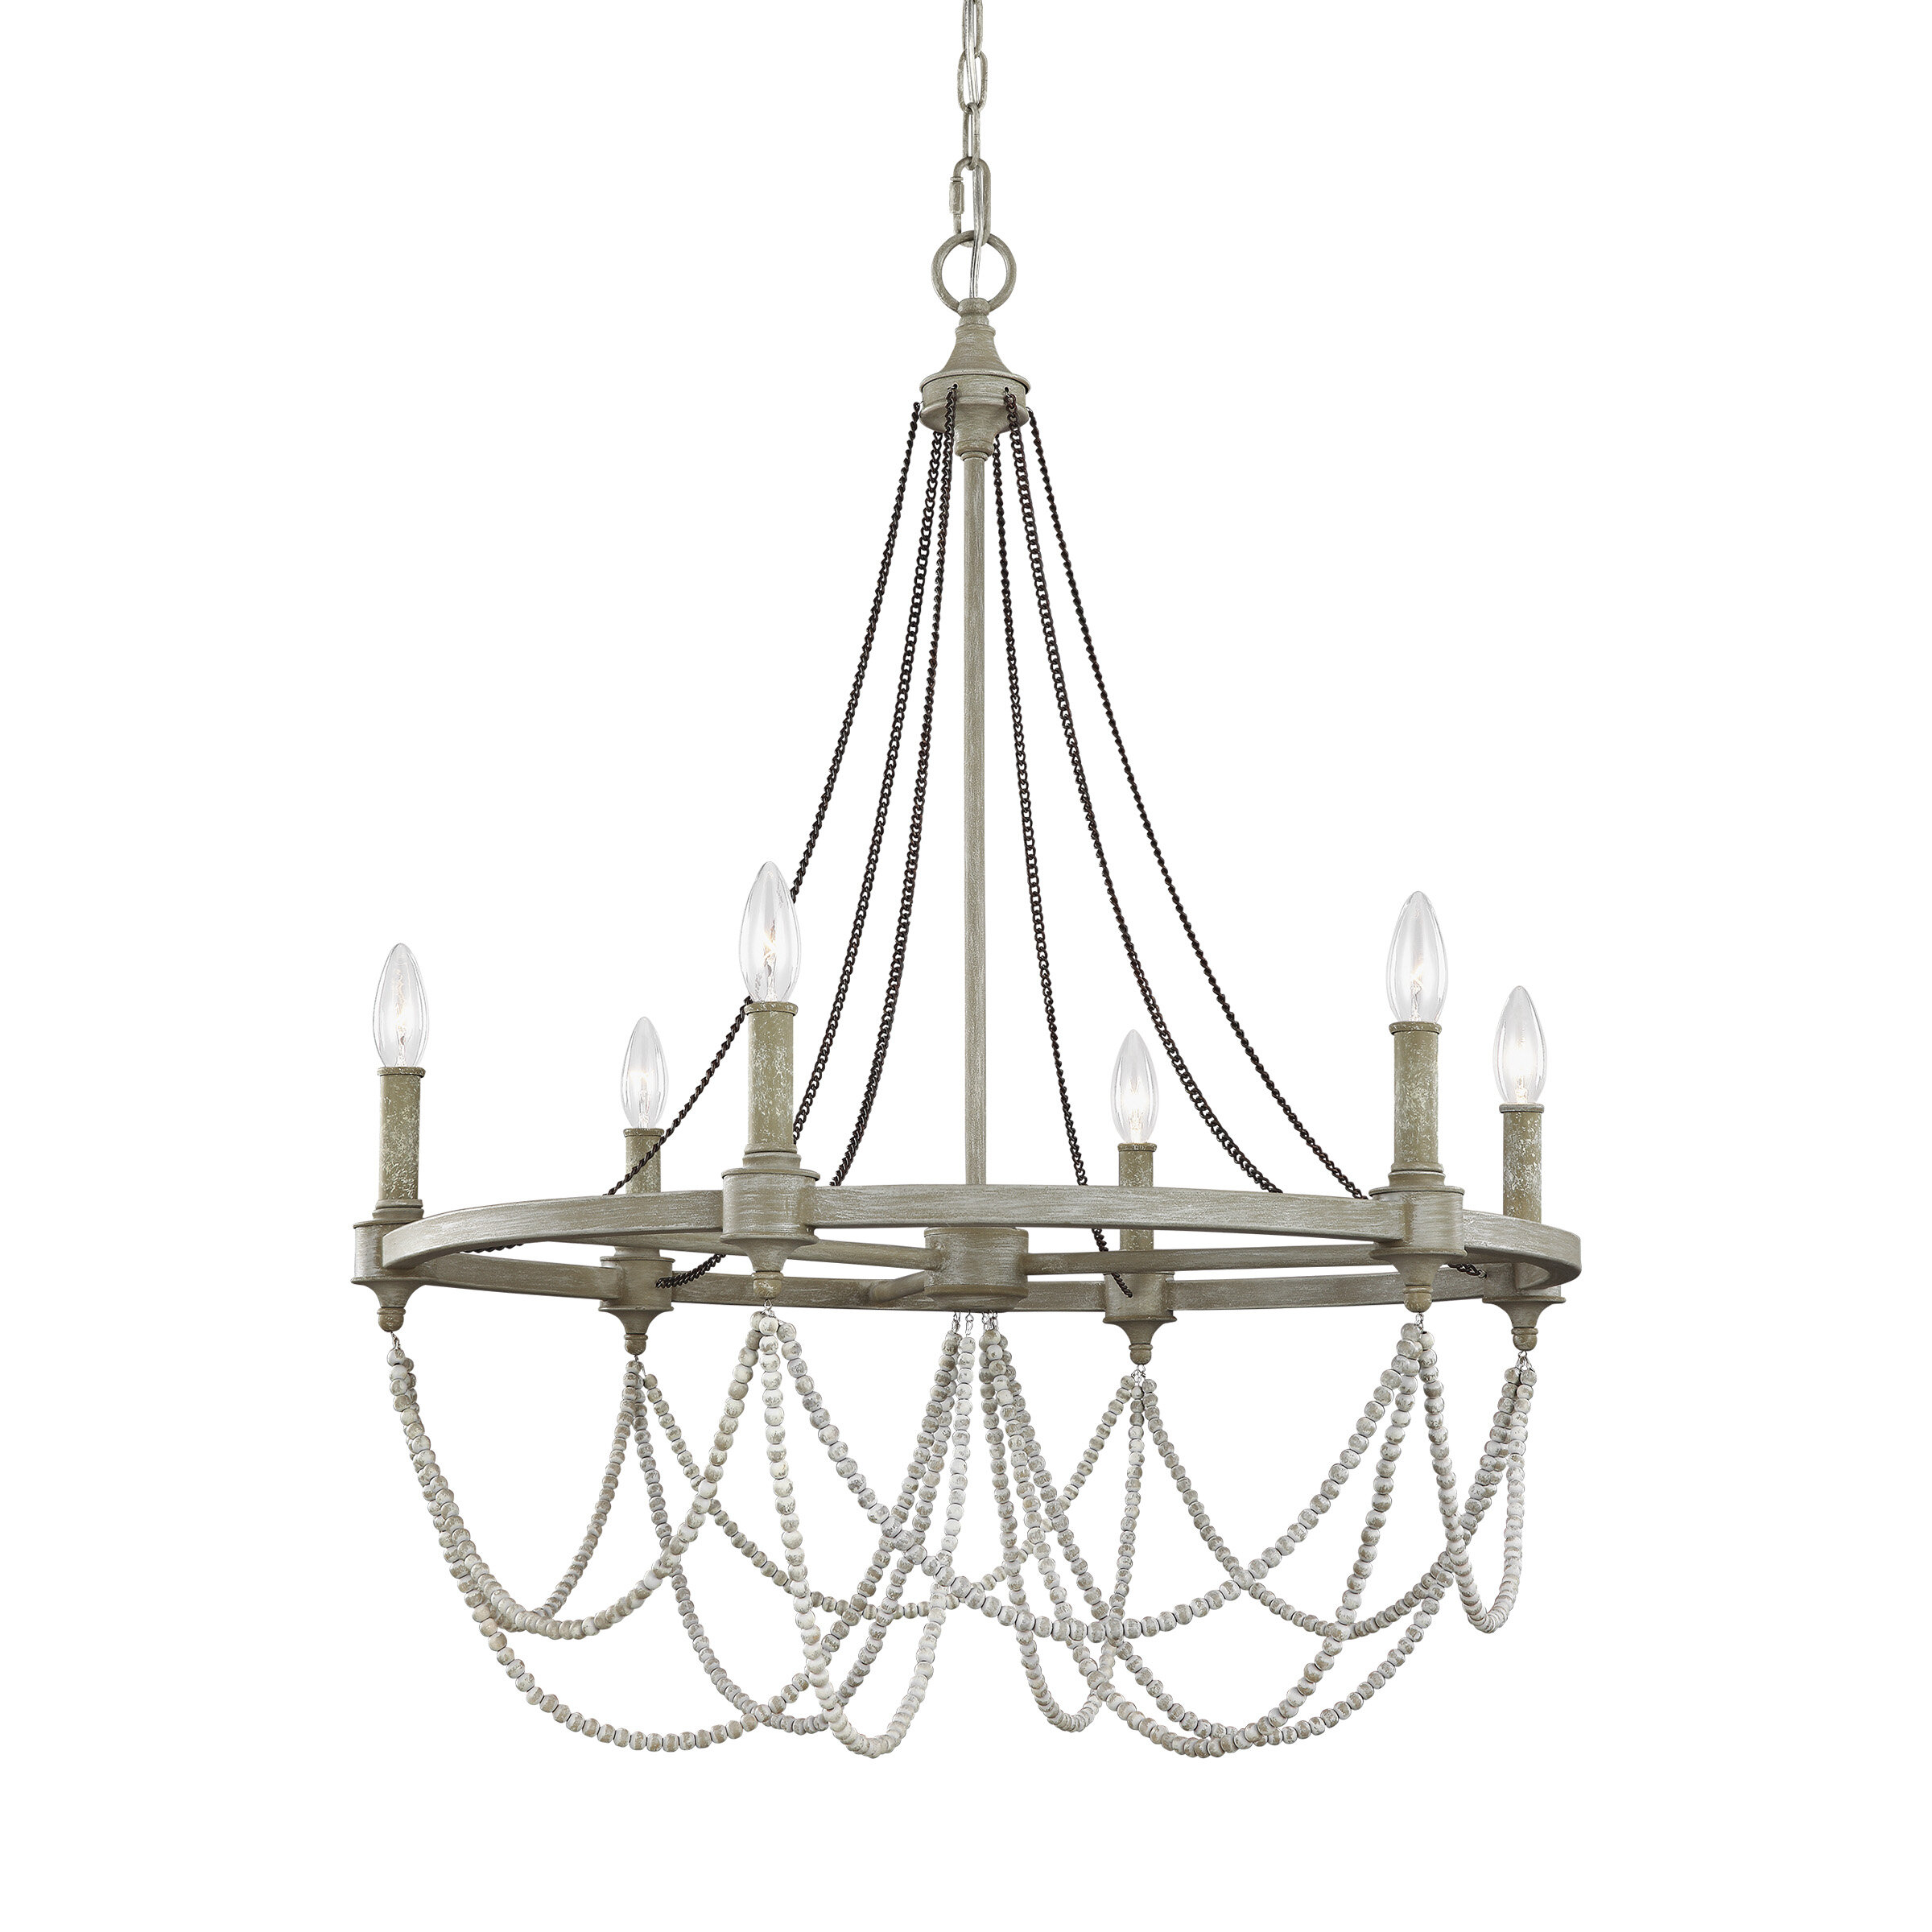 Fitzgibbon 6-Light Candle Style Chandelier within Watford 9-Light Candle Style Chandeliers (Image 15 of 30)